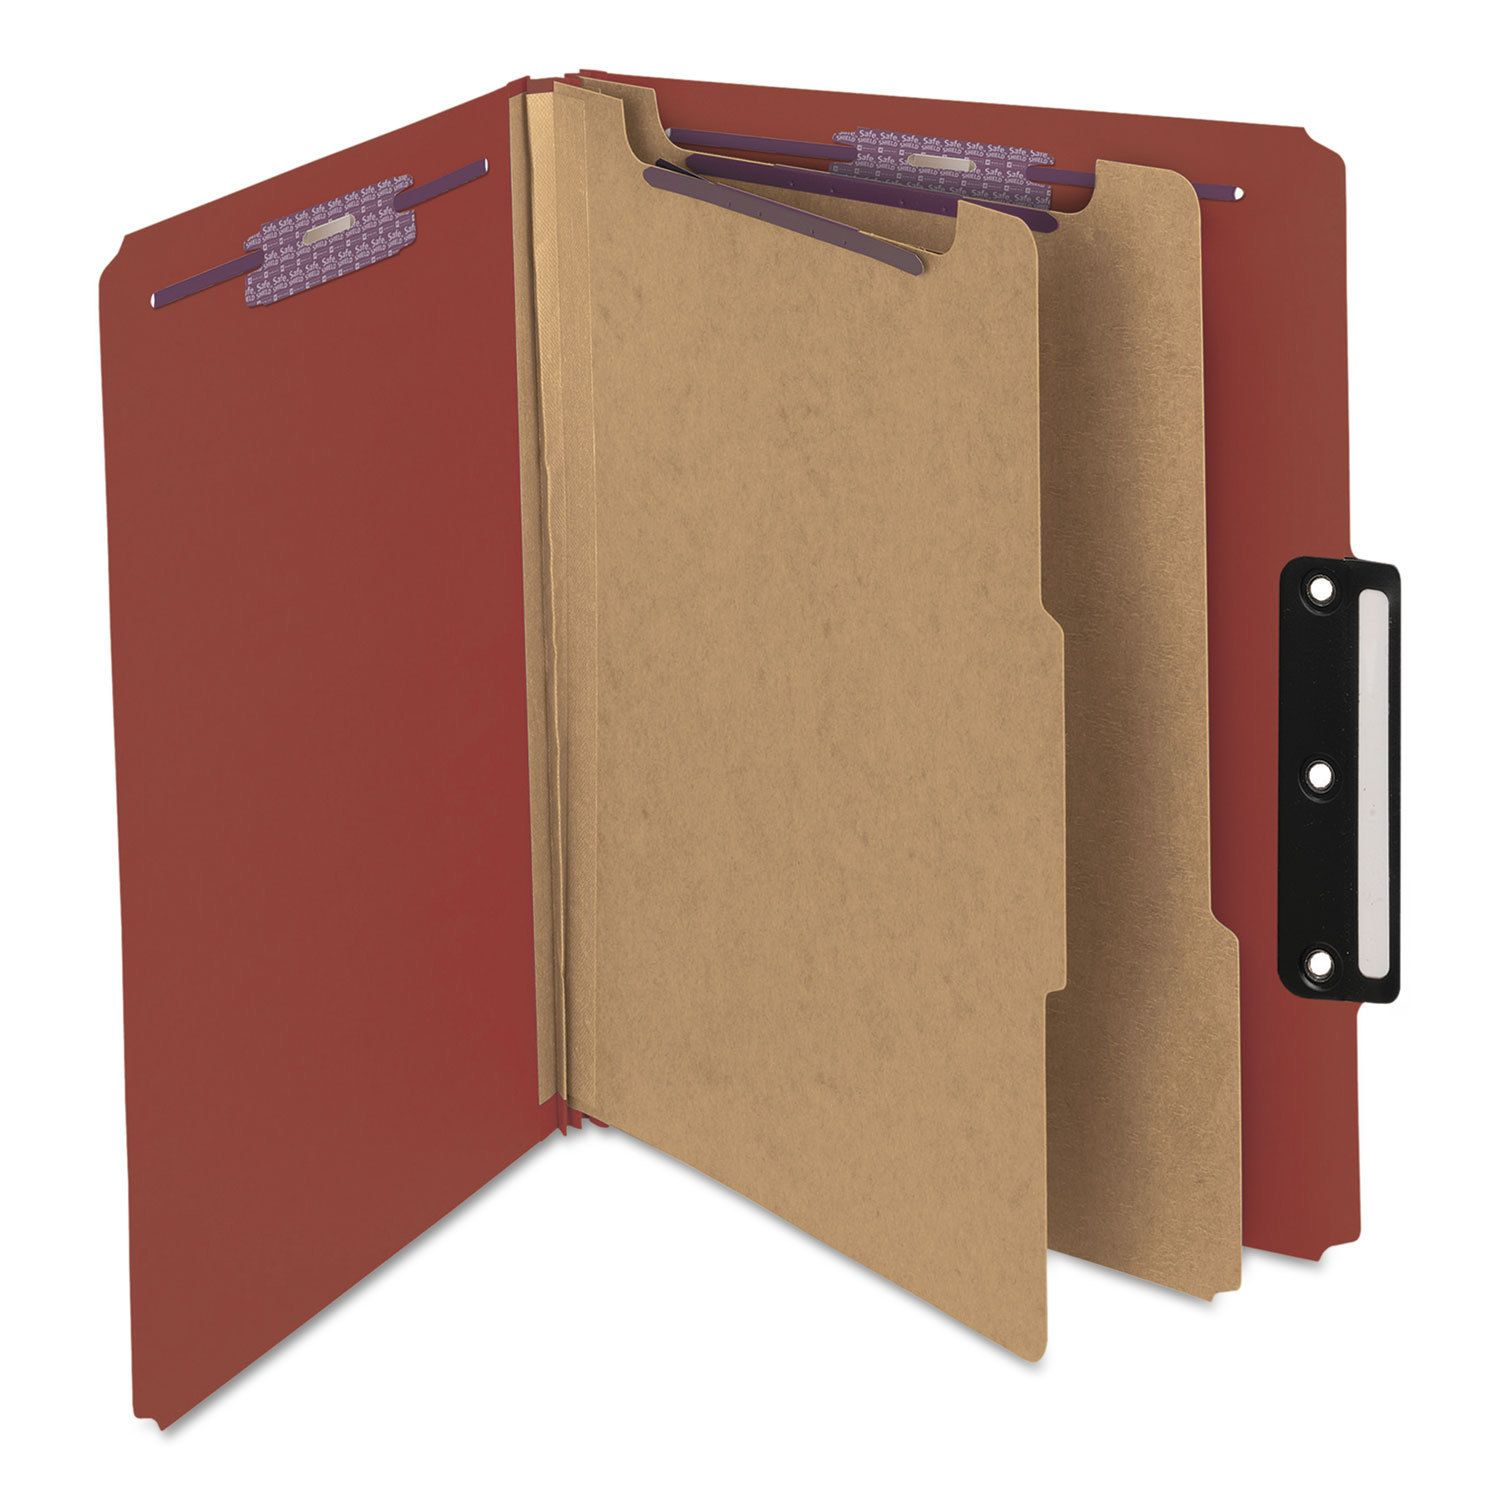 Matte Texture Red Paper 2 Pocket Folders with Prongs RED 50 Pack 50 Pack with 3 Metal Prong Fastener Clips by Better Office Products Letter Size Paper Folders